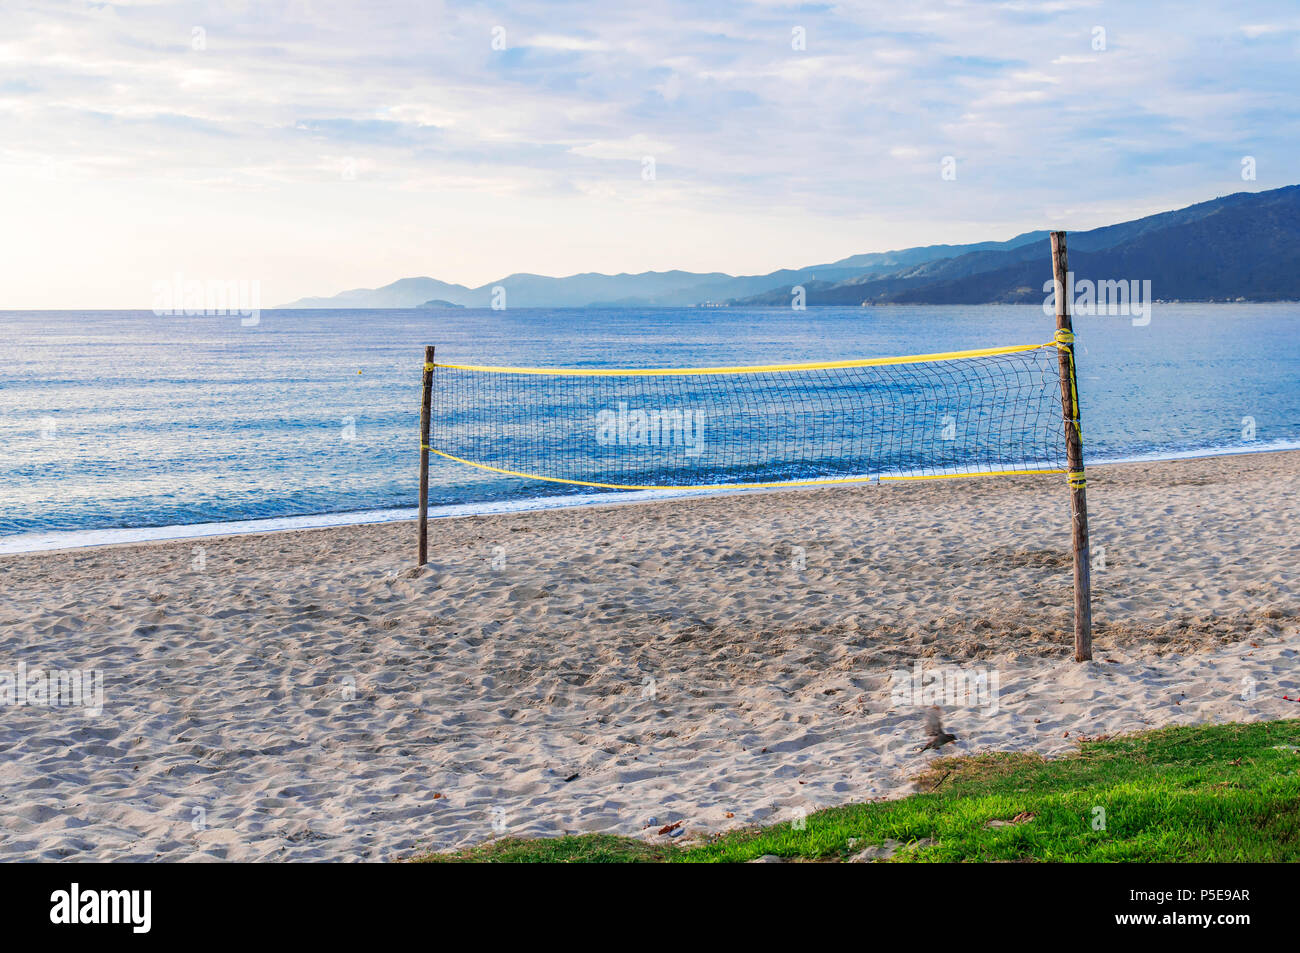 Beach Volley Court With Sea Background Stock Photo Alamy